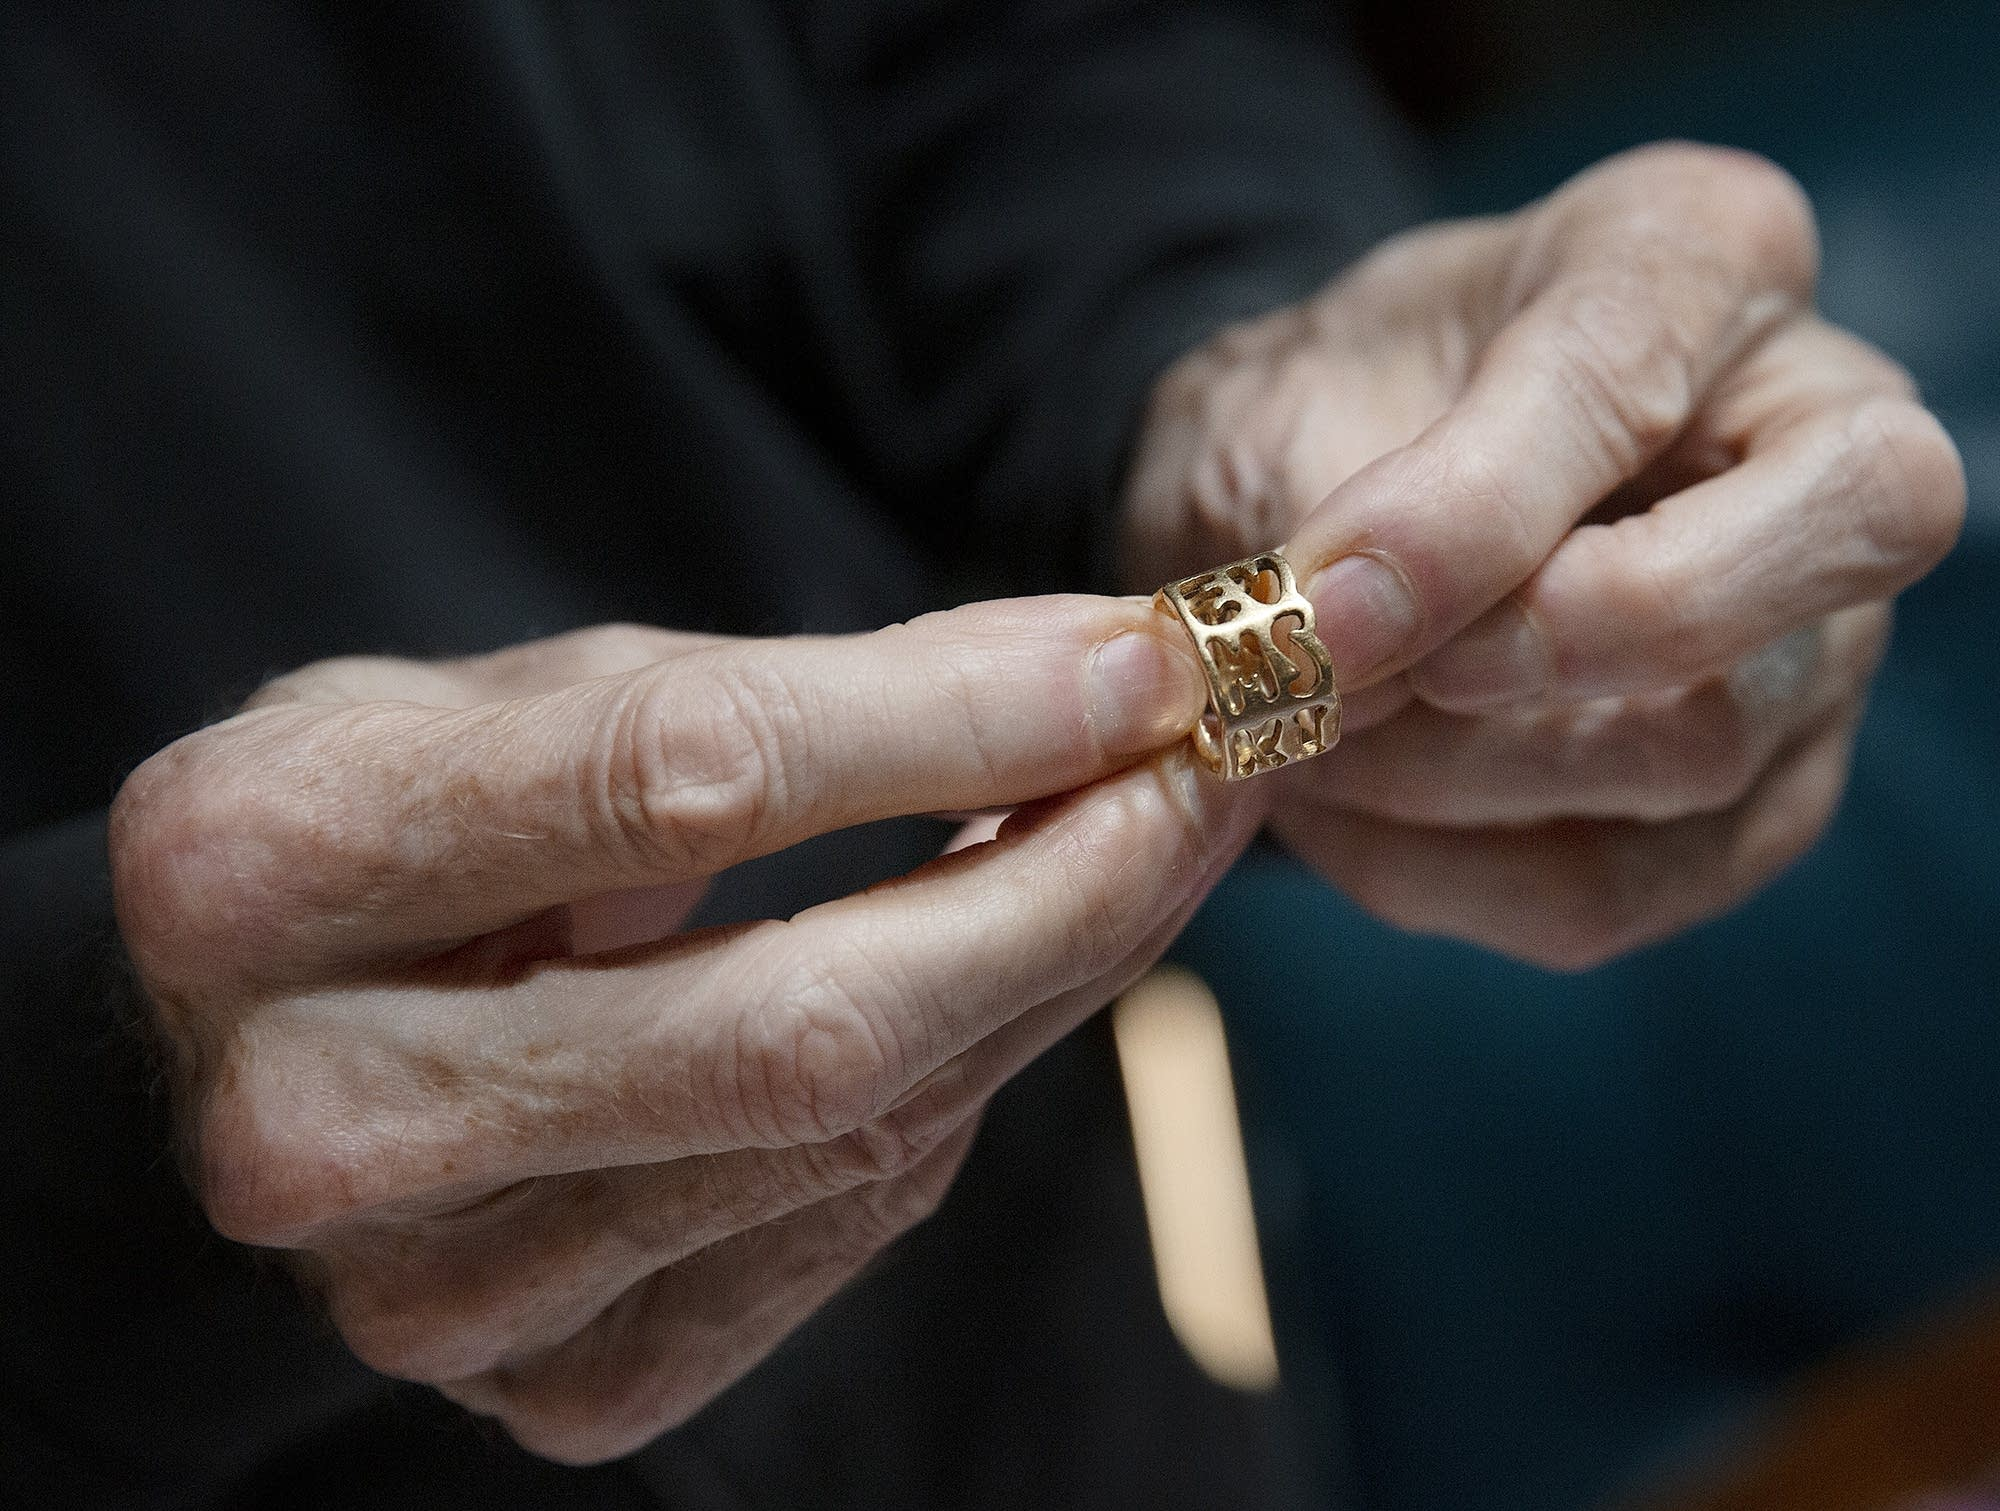 Michael McConnell holds his wedding ring, which features a secret message.